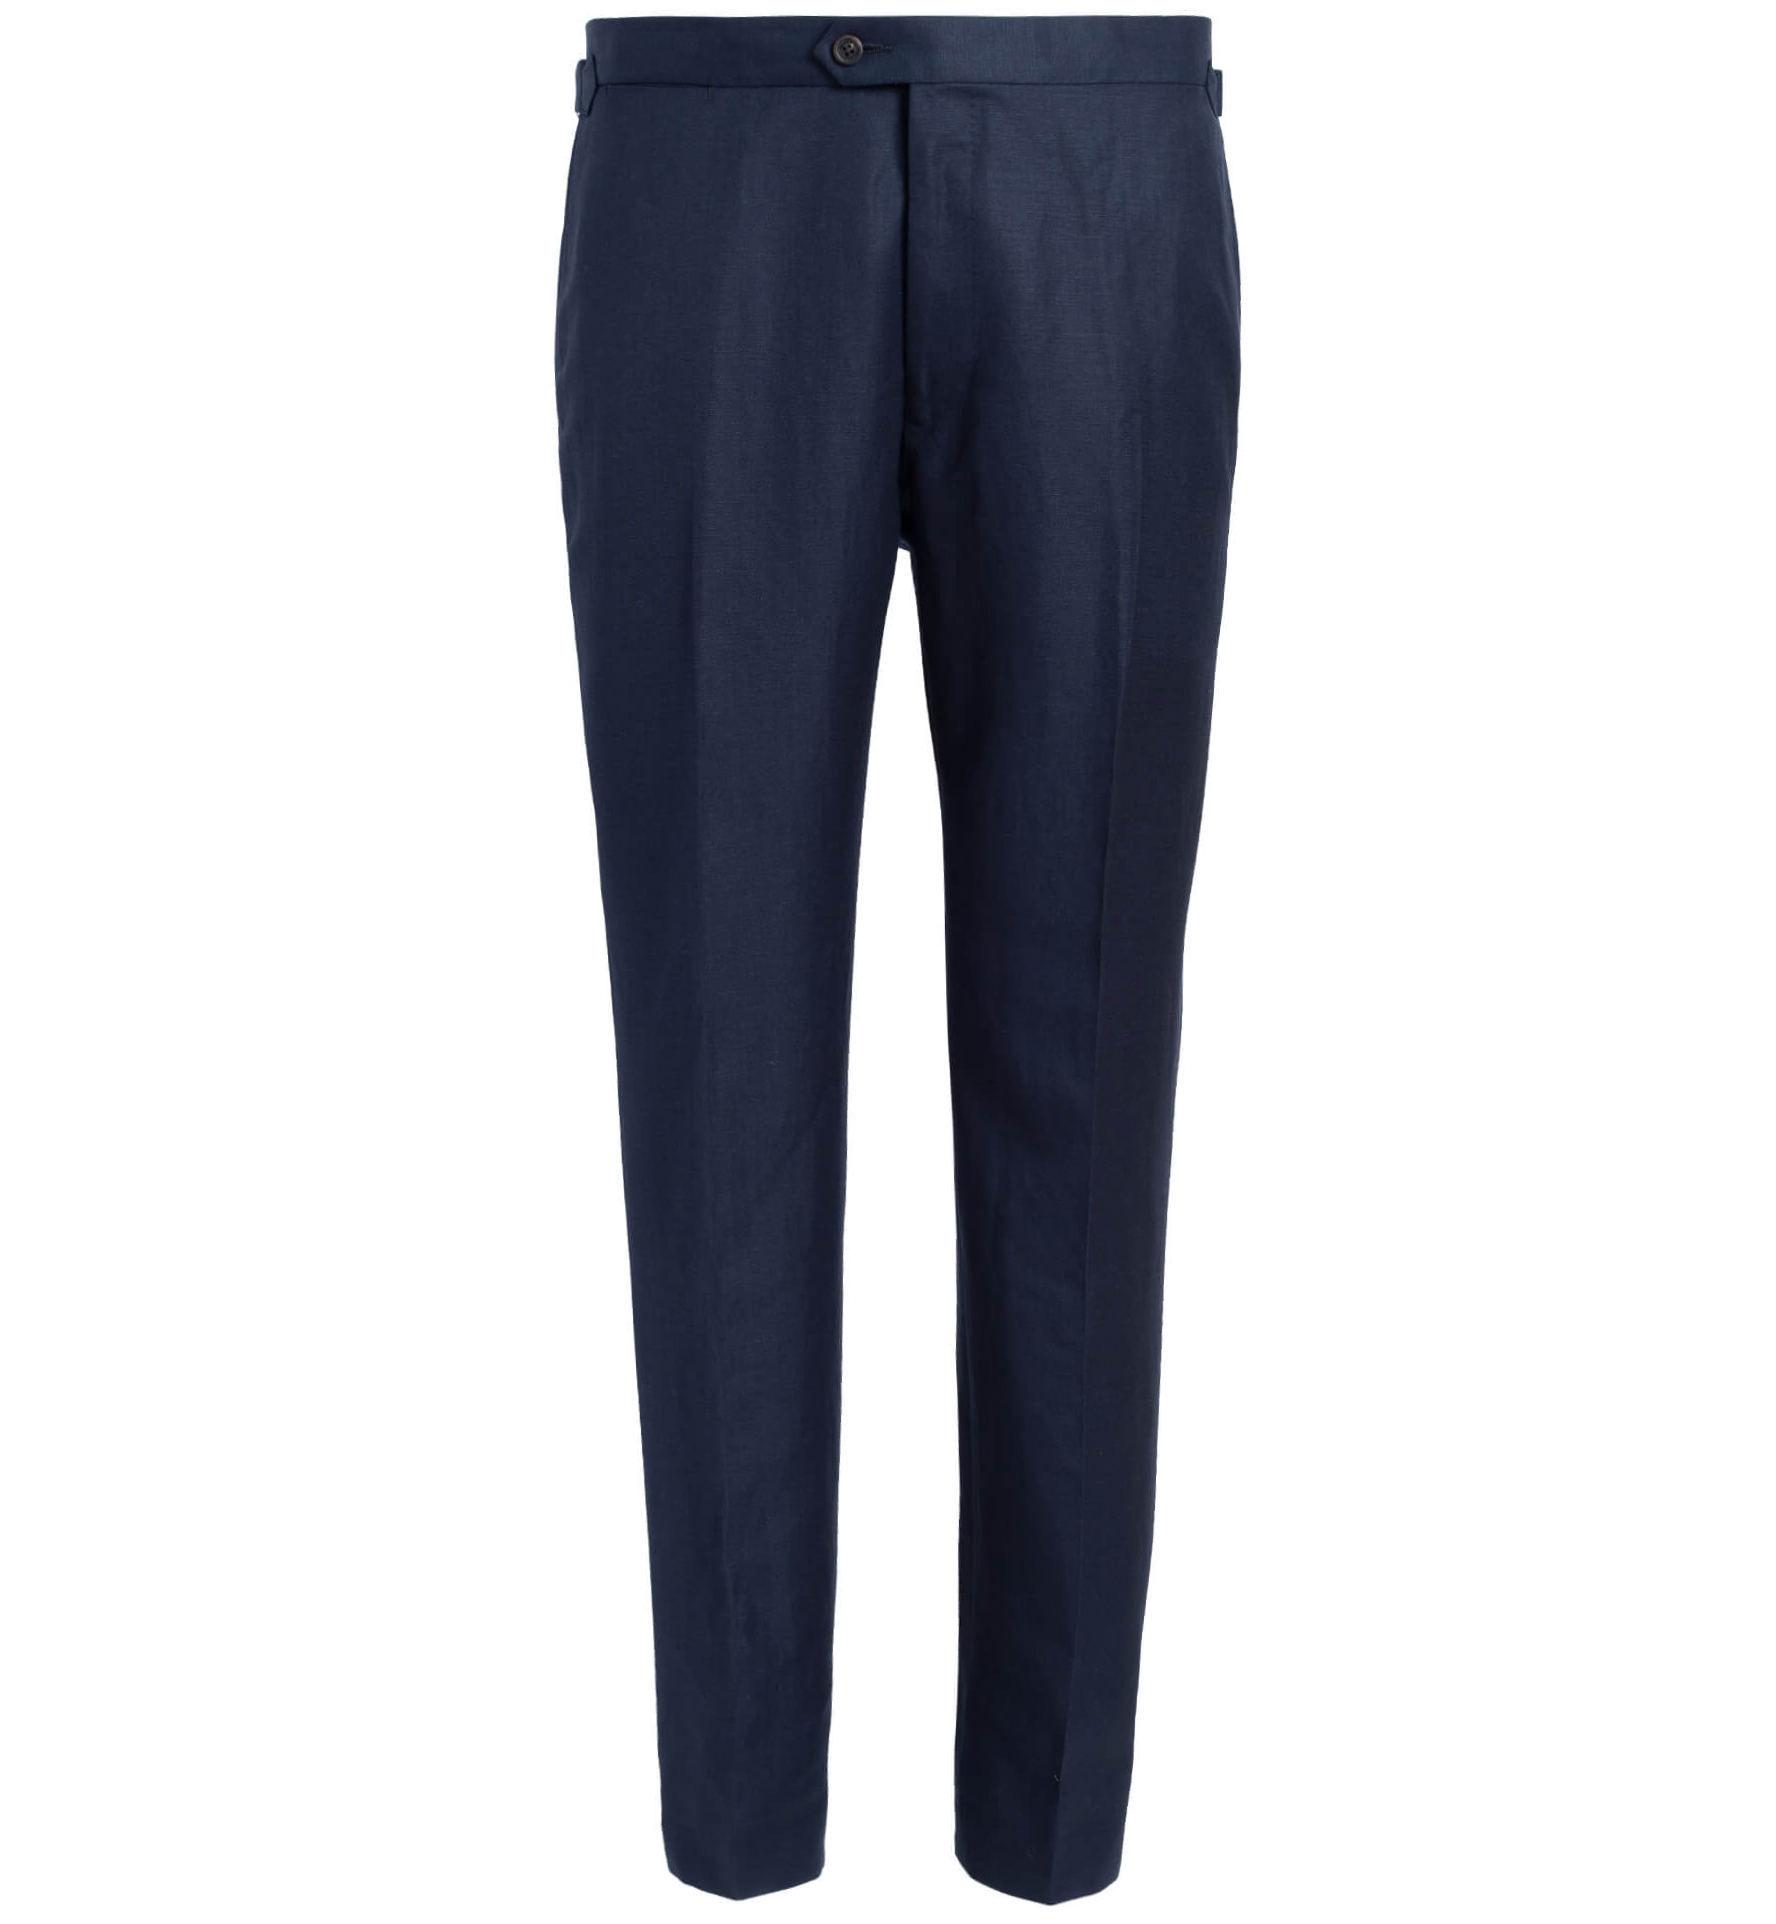 Zoom Image of Allen Navy Wool and Linen Trouser